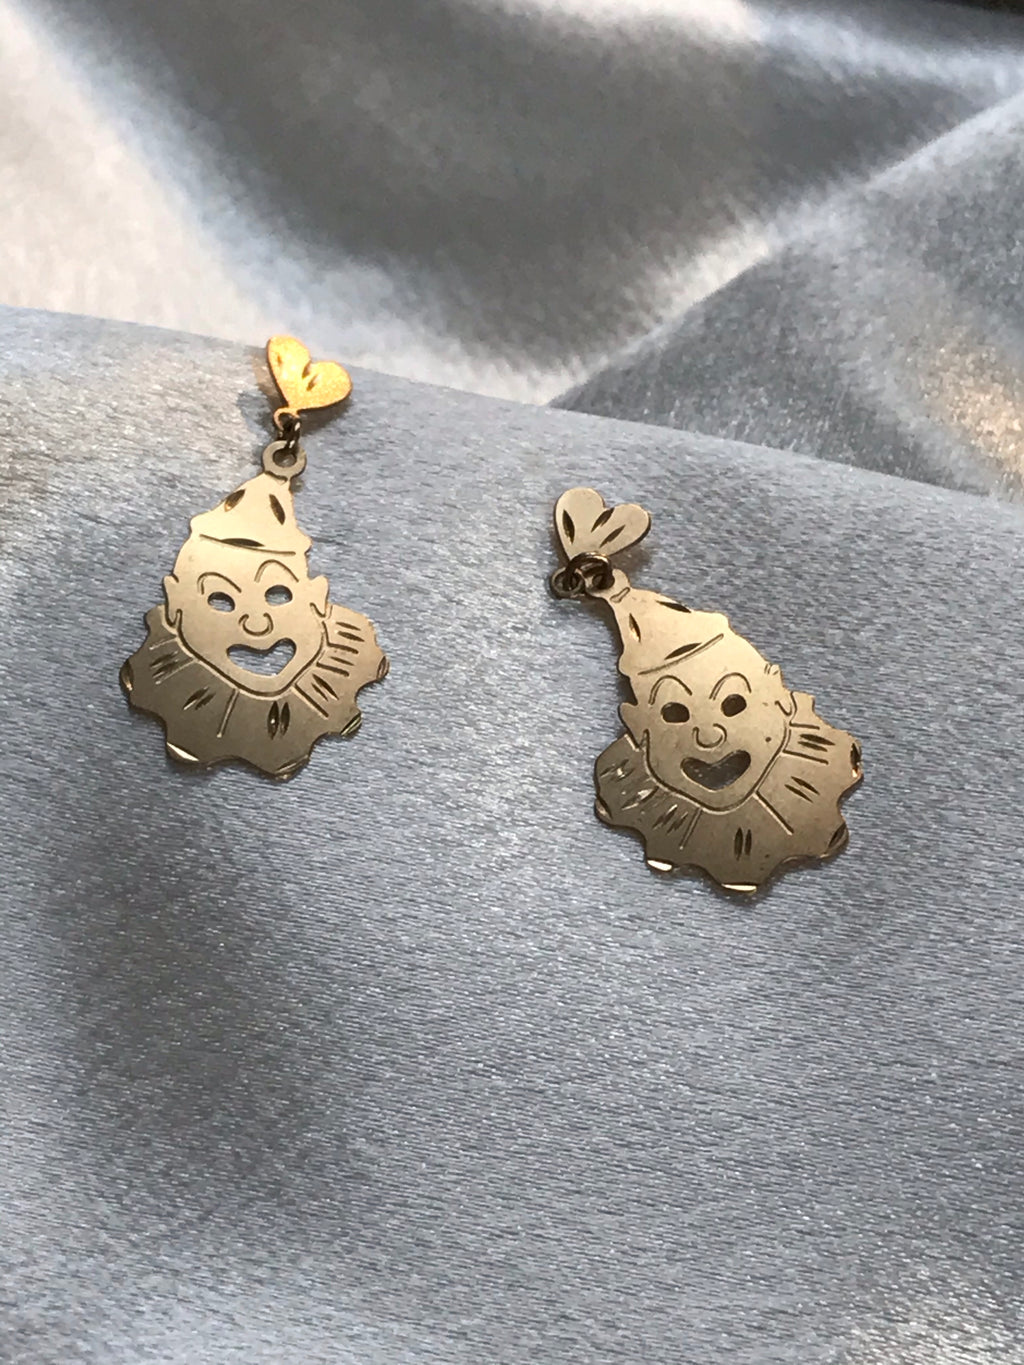 Tears Of A Clown 14k  Earrrings - Size Medium 🤡 🤡